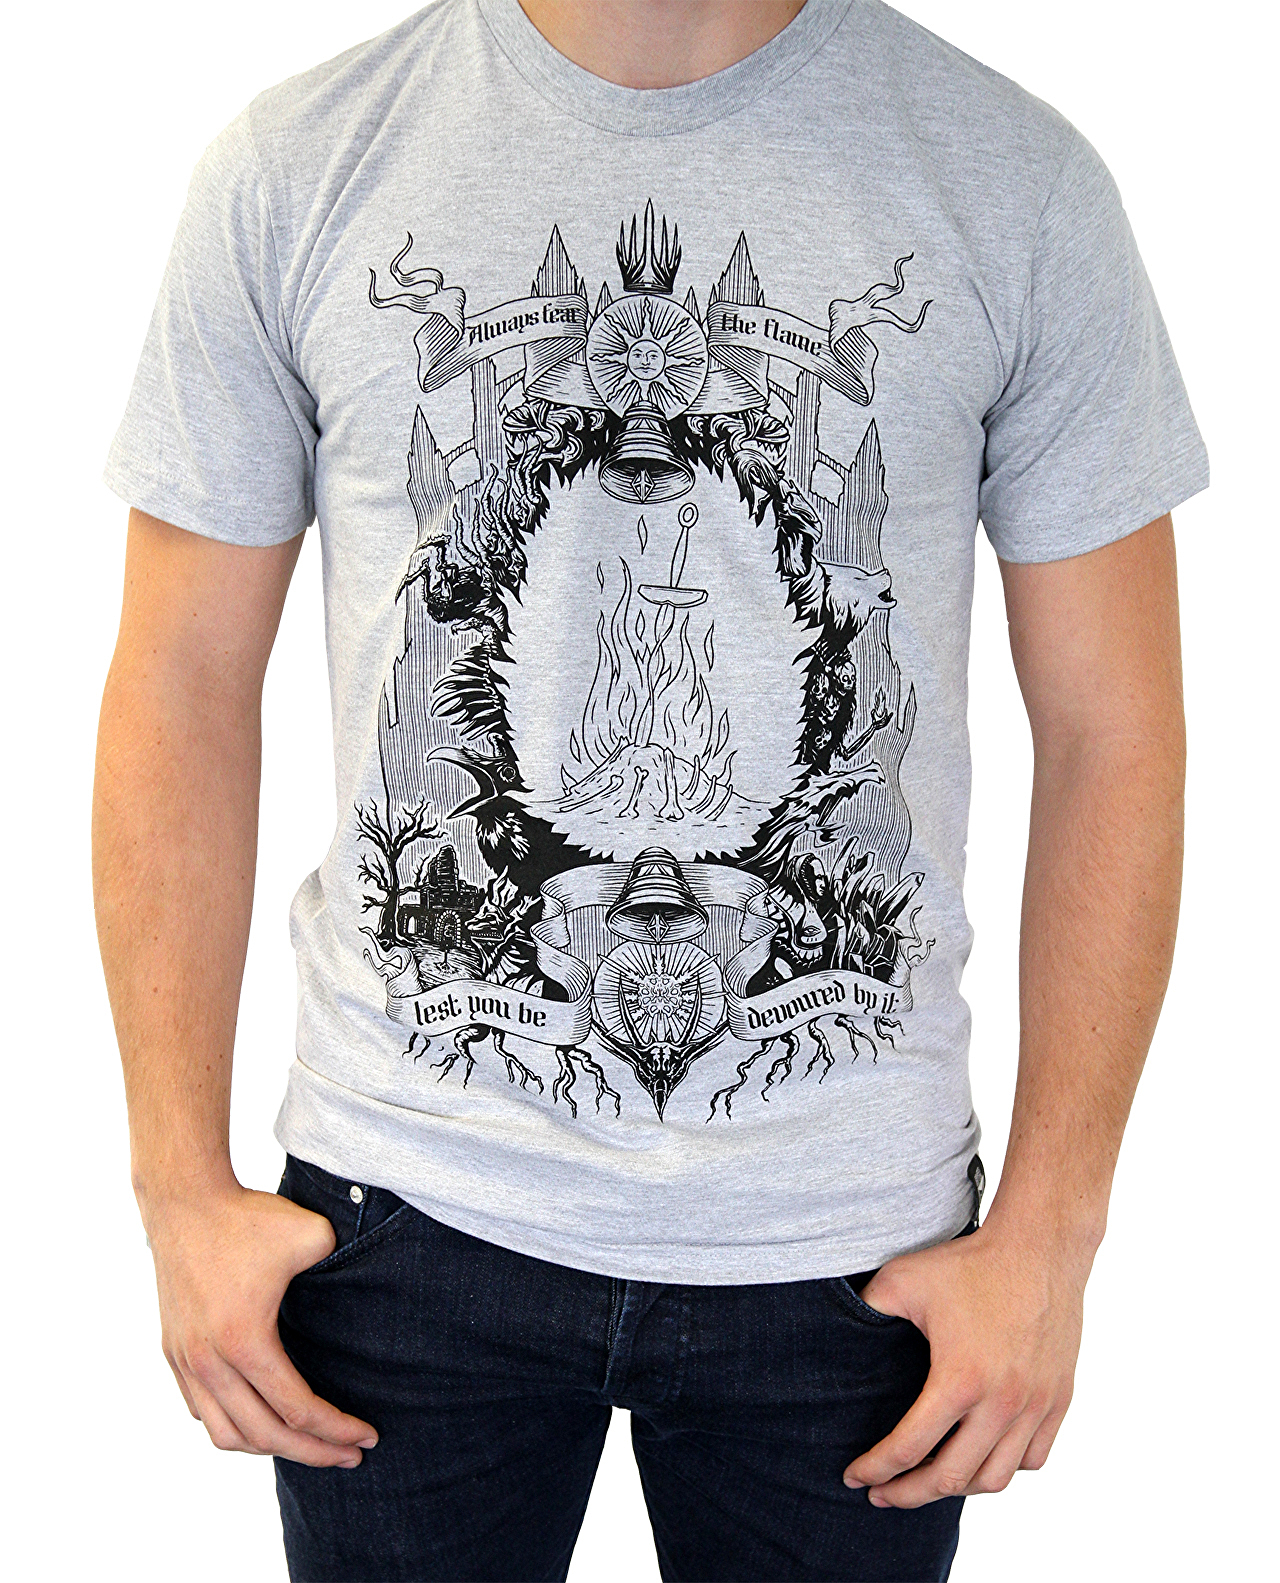 Image of Bonfire T-shirt